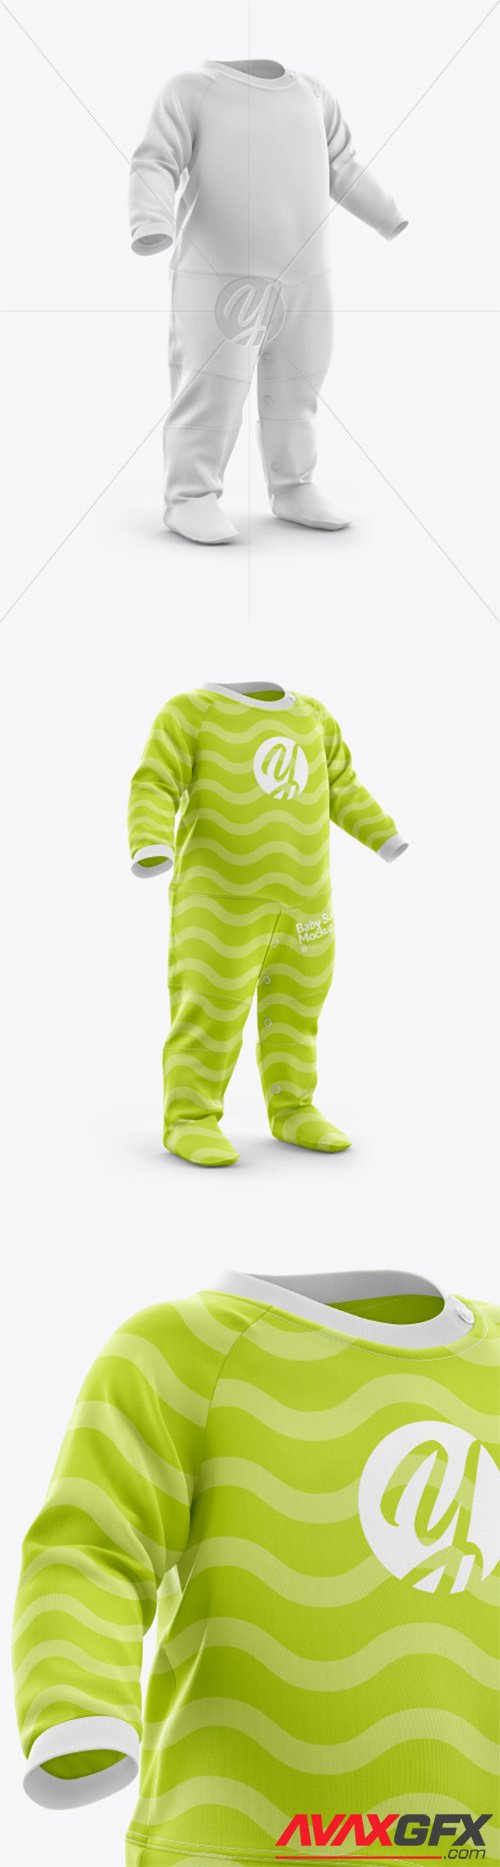 Baby Suit Mockup - Half Side View 44256